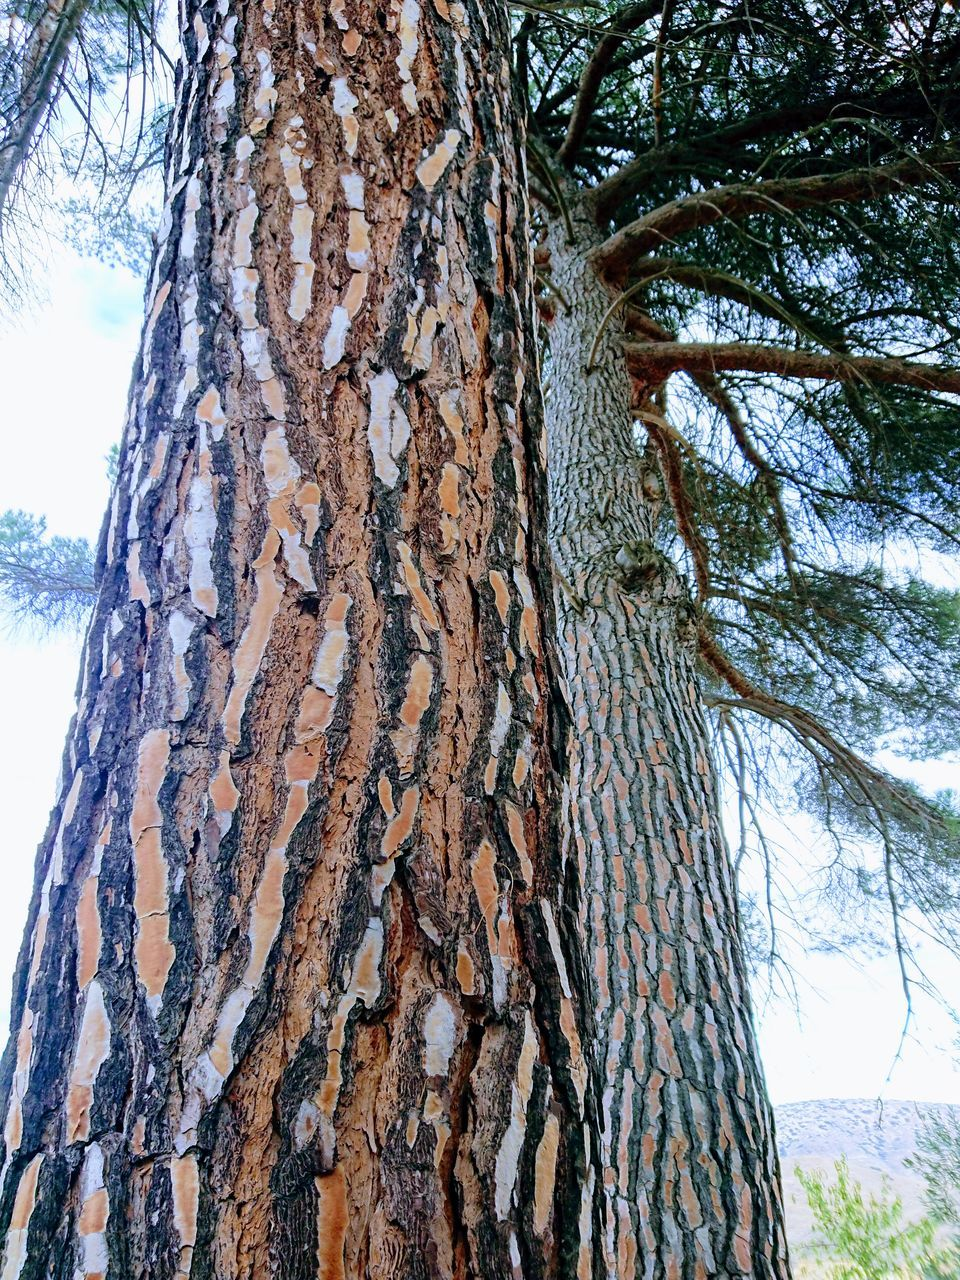 tree trunk, tree, nature, day, textured, bark, low angle view, no people, growth, rough, outdoors, branch, beauty in nature, close-up, marking, sky, dead tree